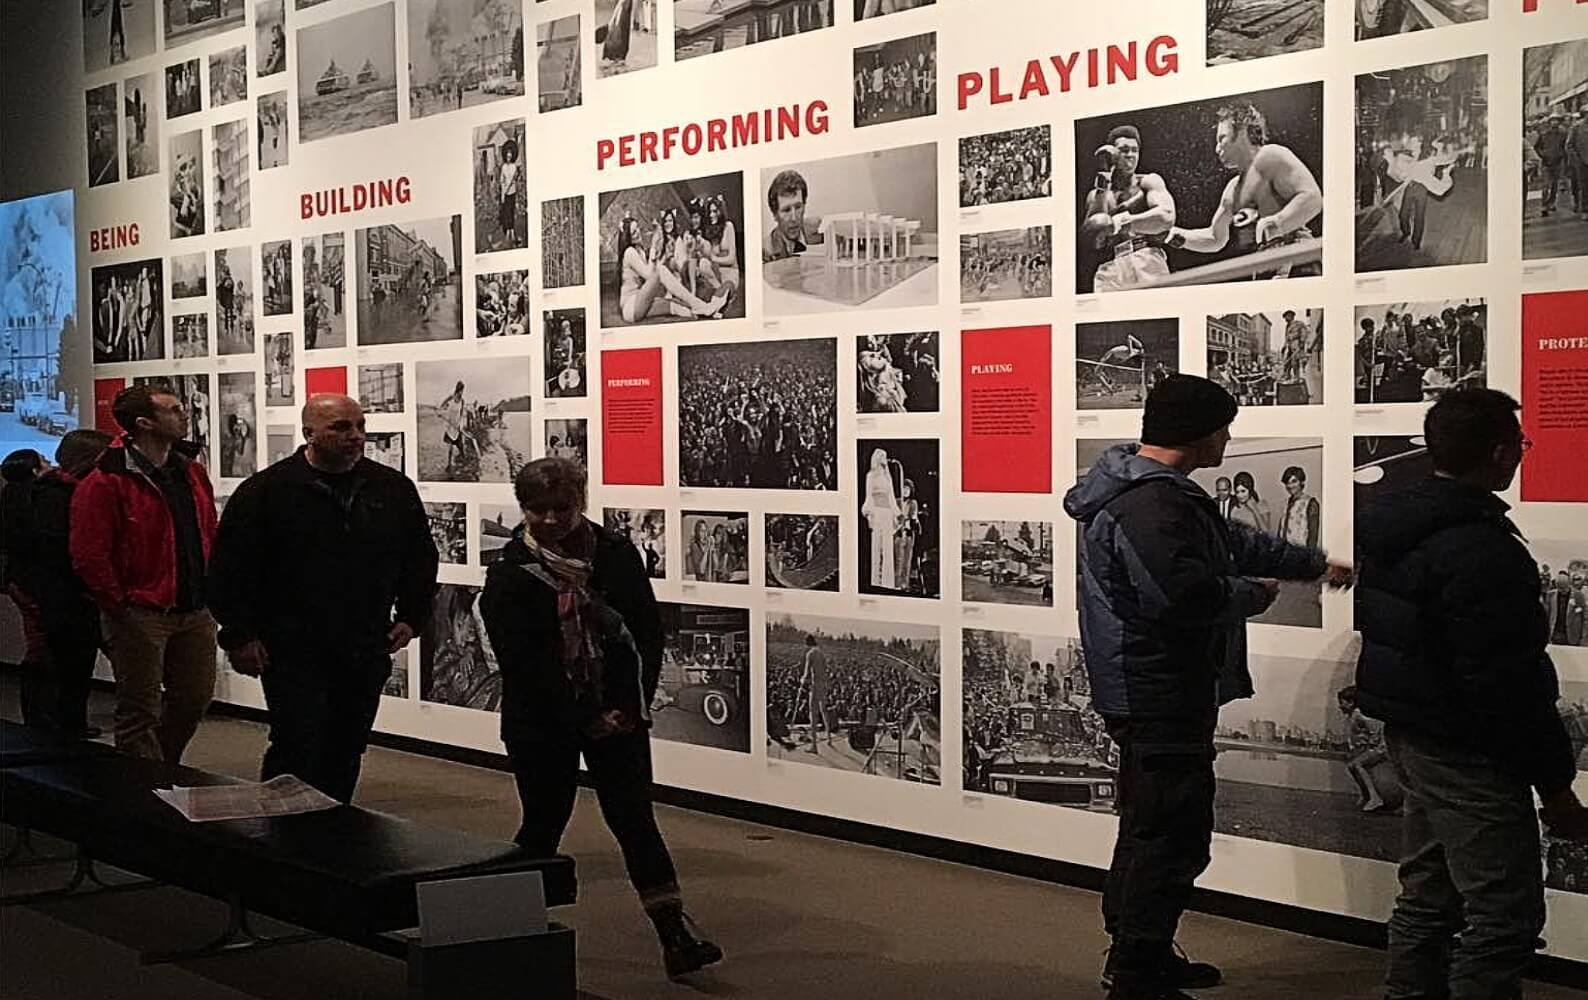 People view a display at the Museum of Vancouver